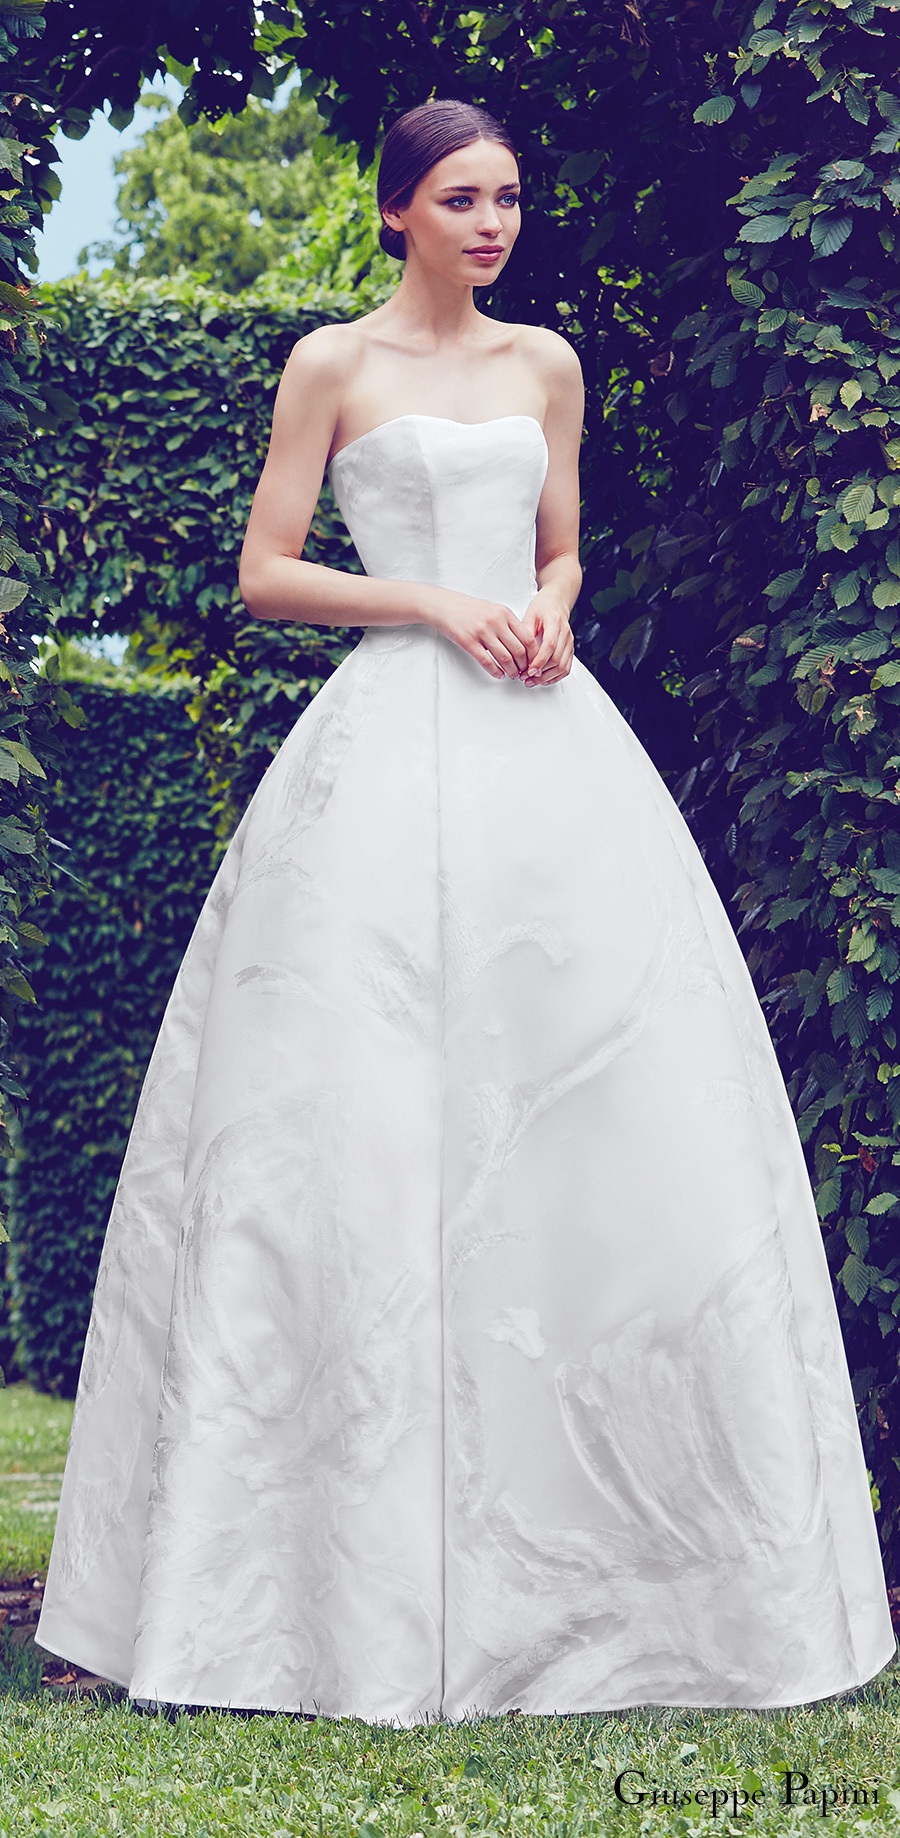 giuseppe papini 2017 wedding dresses crazyforus